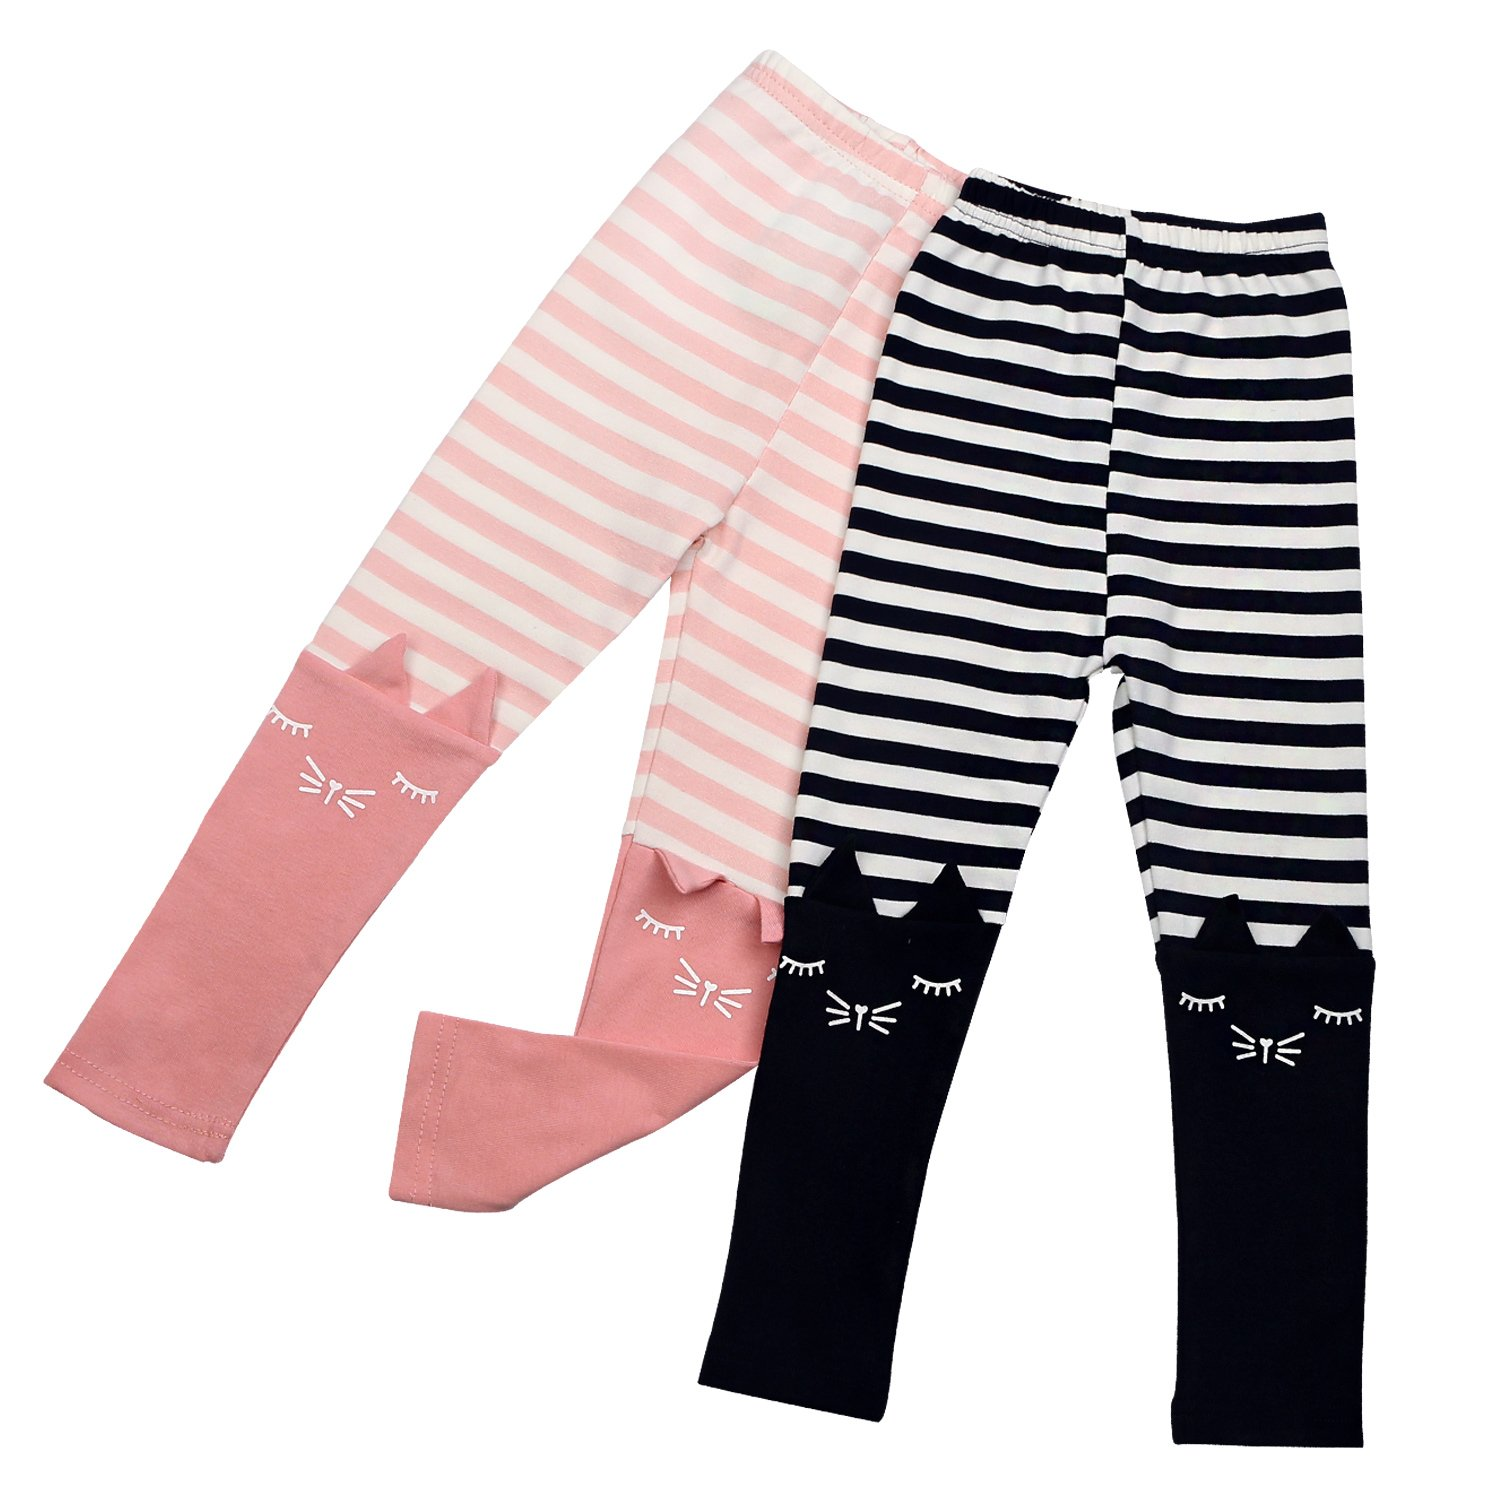 2 Pack Girls Pants Baby Toddler Girl Legging Cute Cat Striped Spliced Kids Pant Cotton Blended 5T by BOOPH (Image #1)